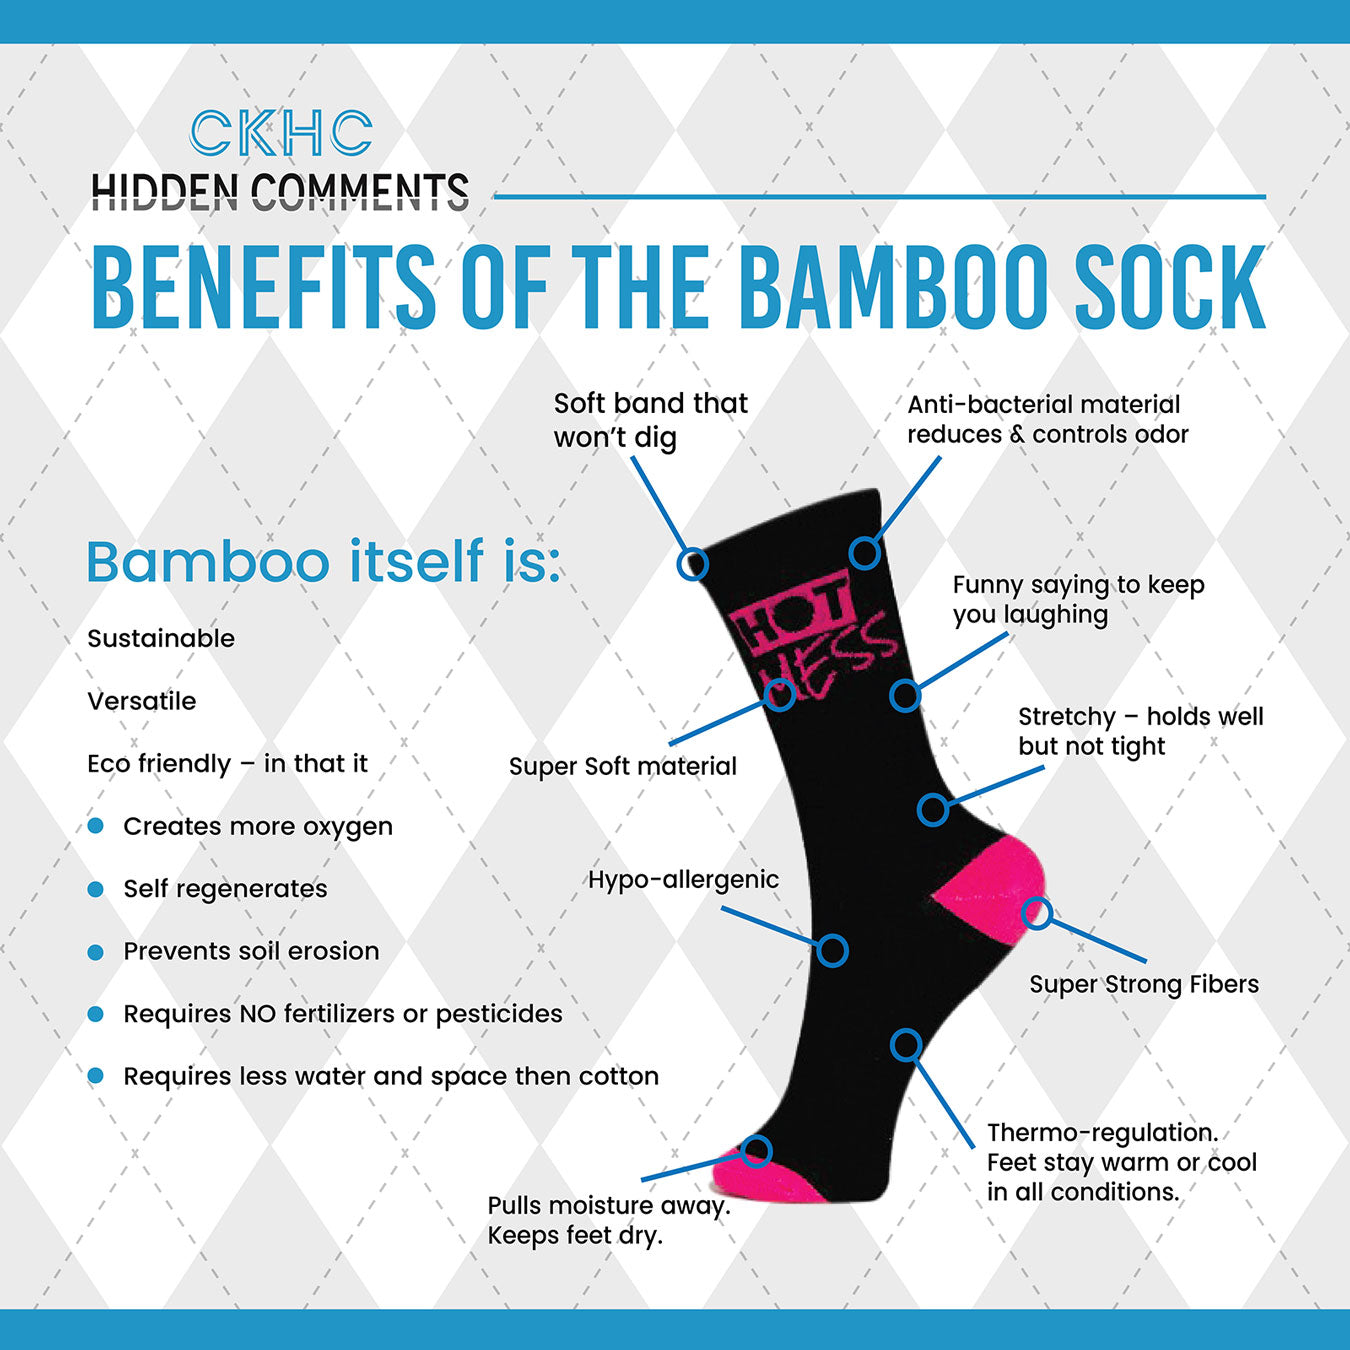 Benefits of the bamboo sock